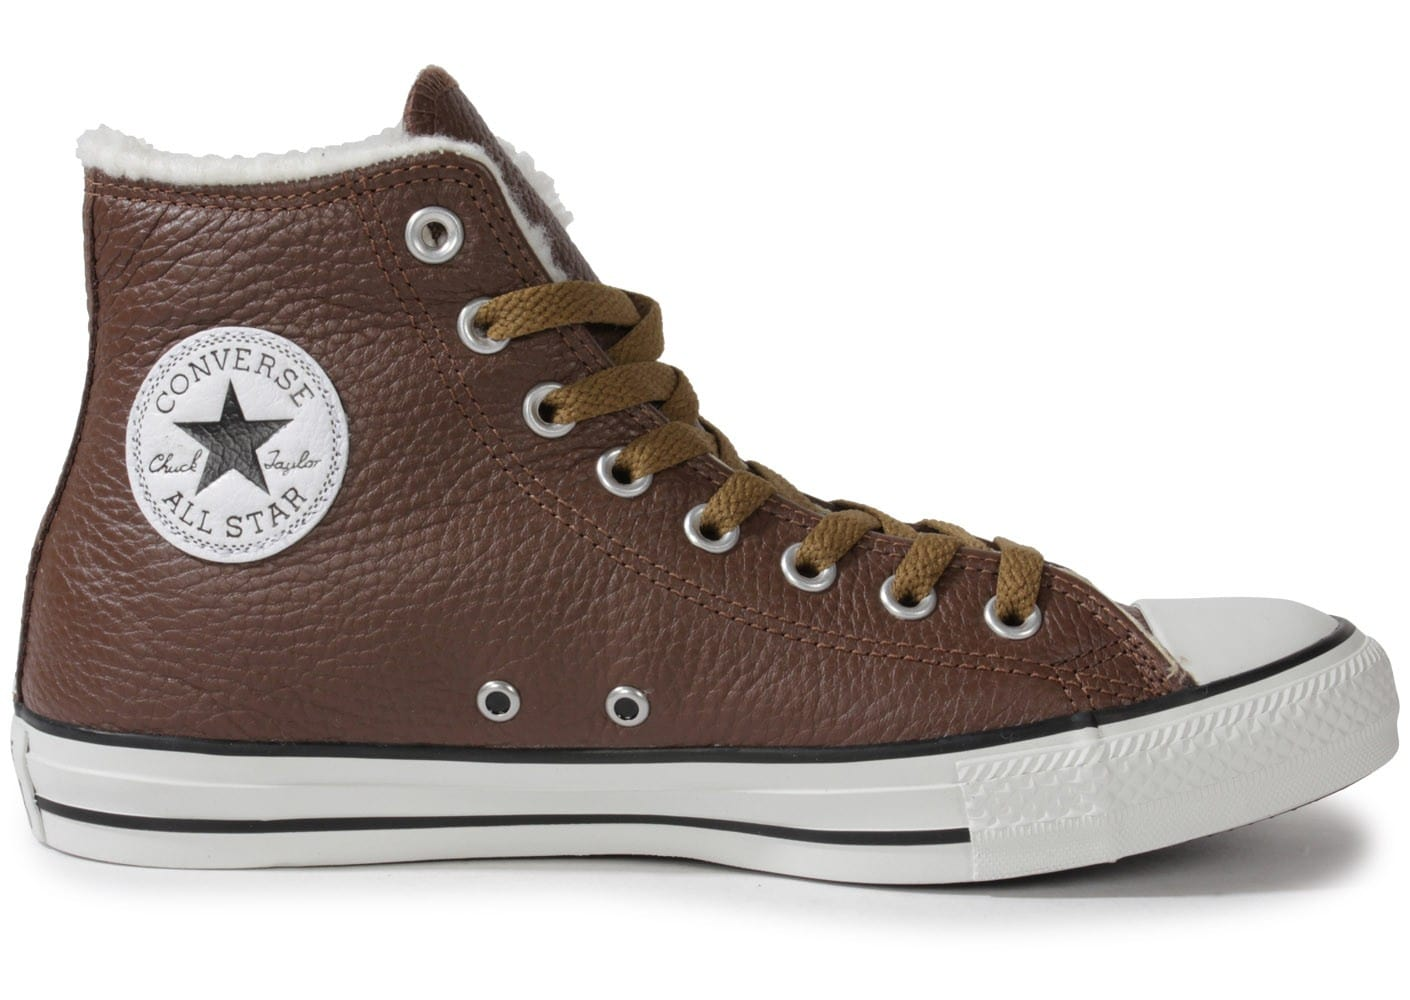 Chaussures Converse CHUCK TAYLOR ALL STAR CUIR CHOCOLAT vue dessous